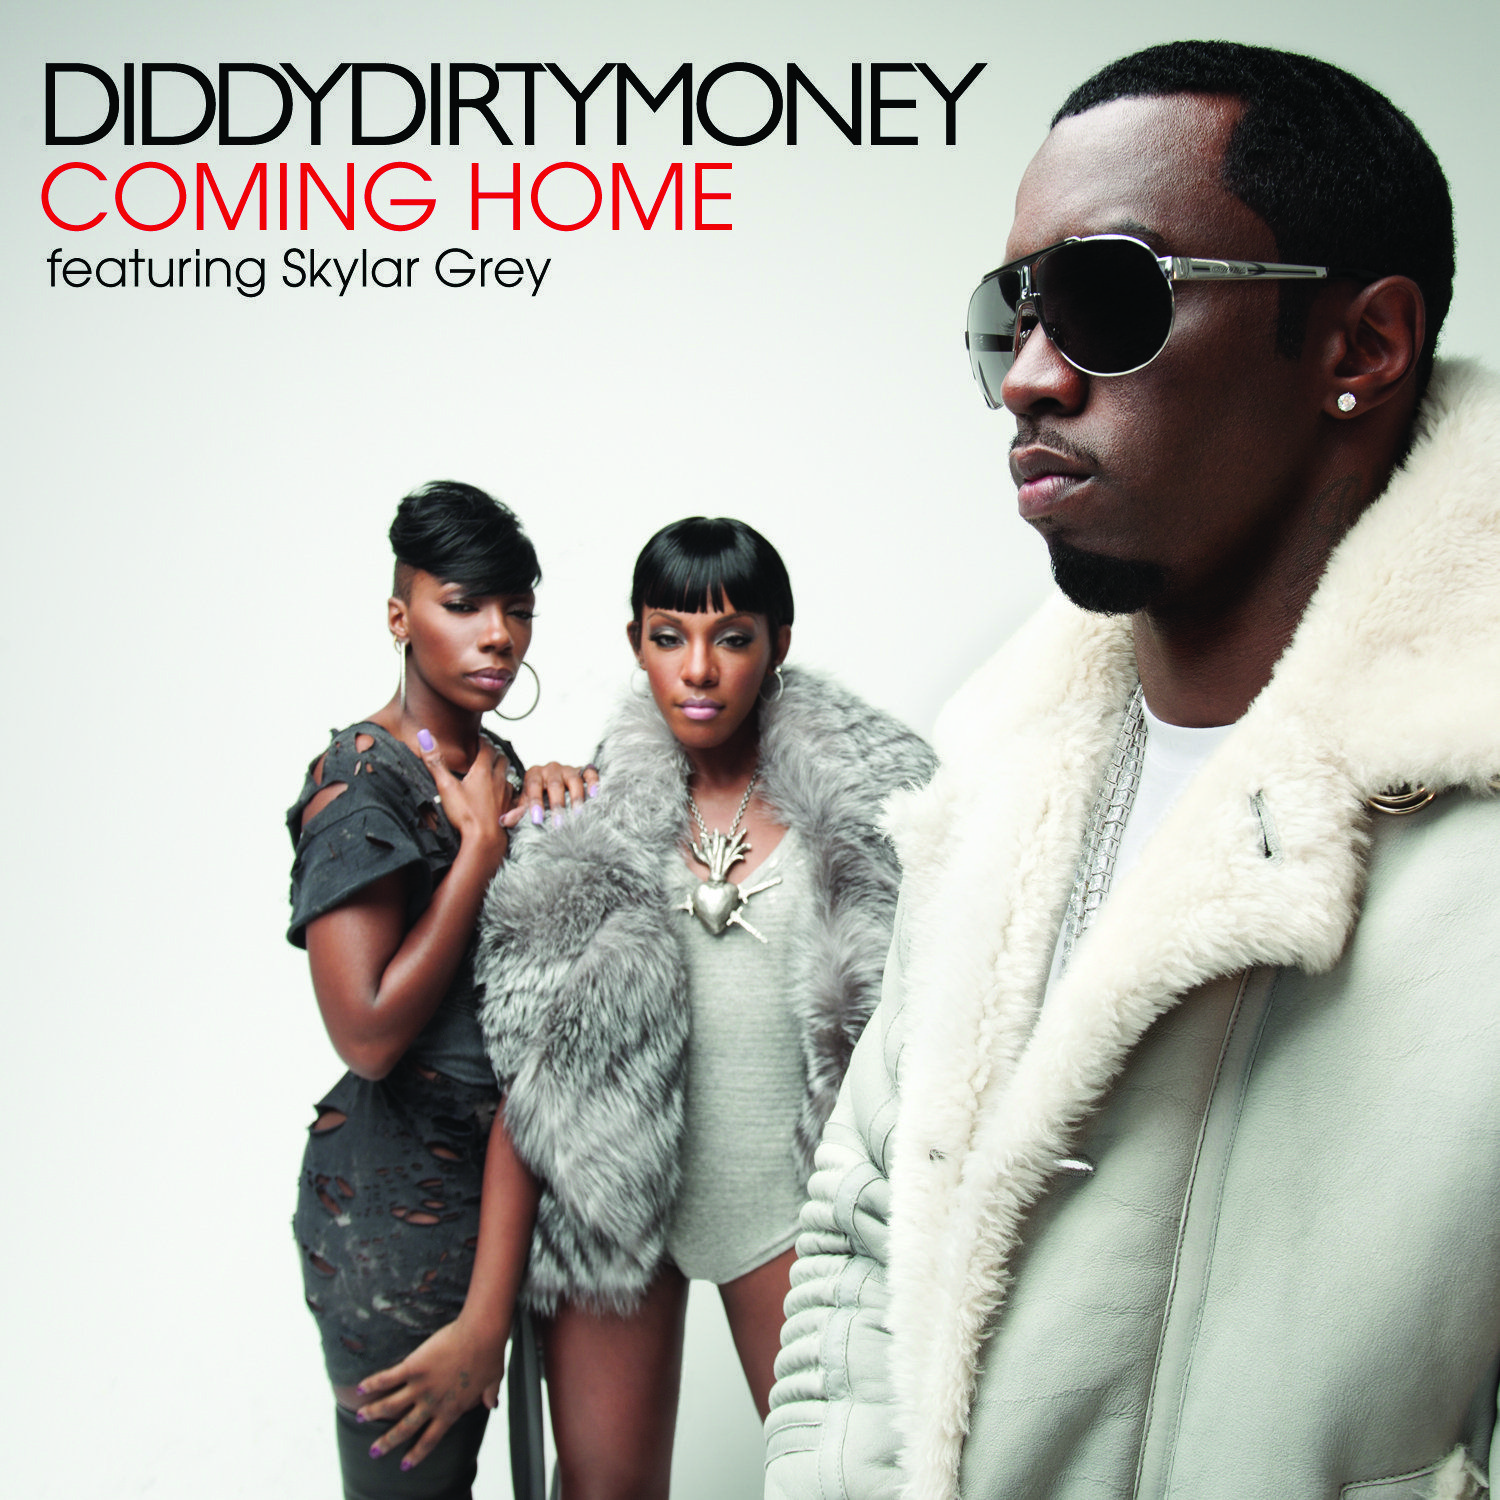 Diddy – Dirty Money, Skylar Grey – Coming Home (single cover art)